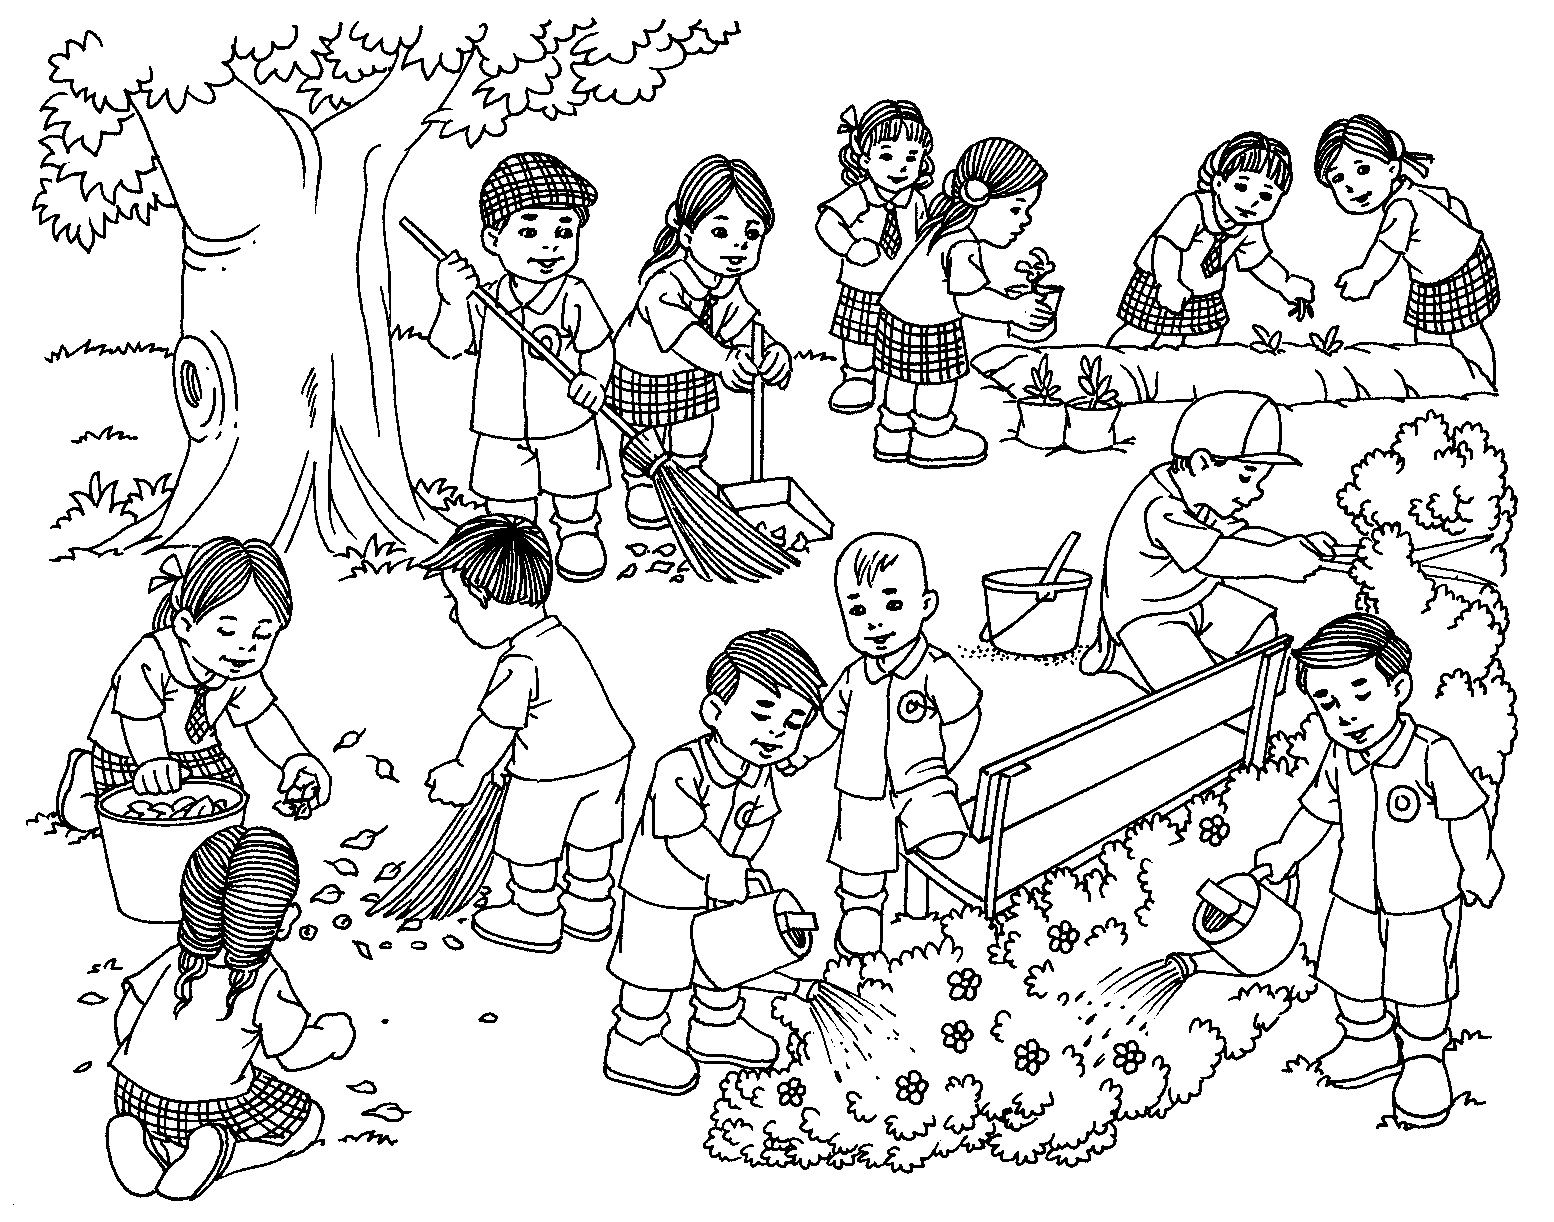 coloring art for grade 3 family tree drawing easy at getdrawings free download for coloring art grade 3